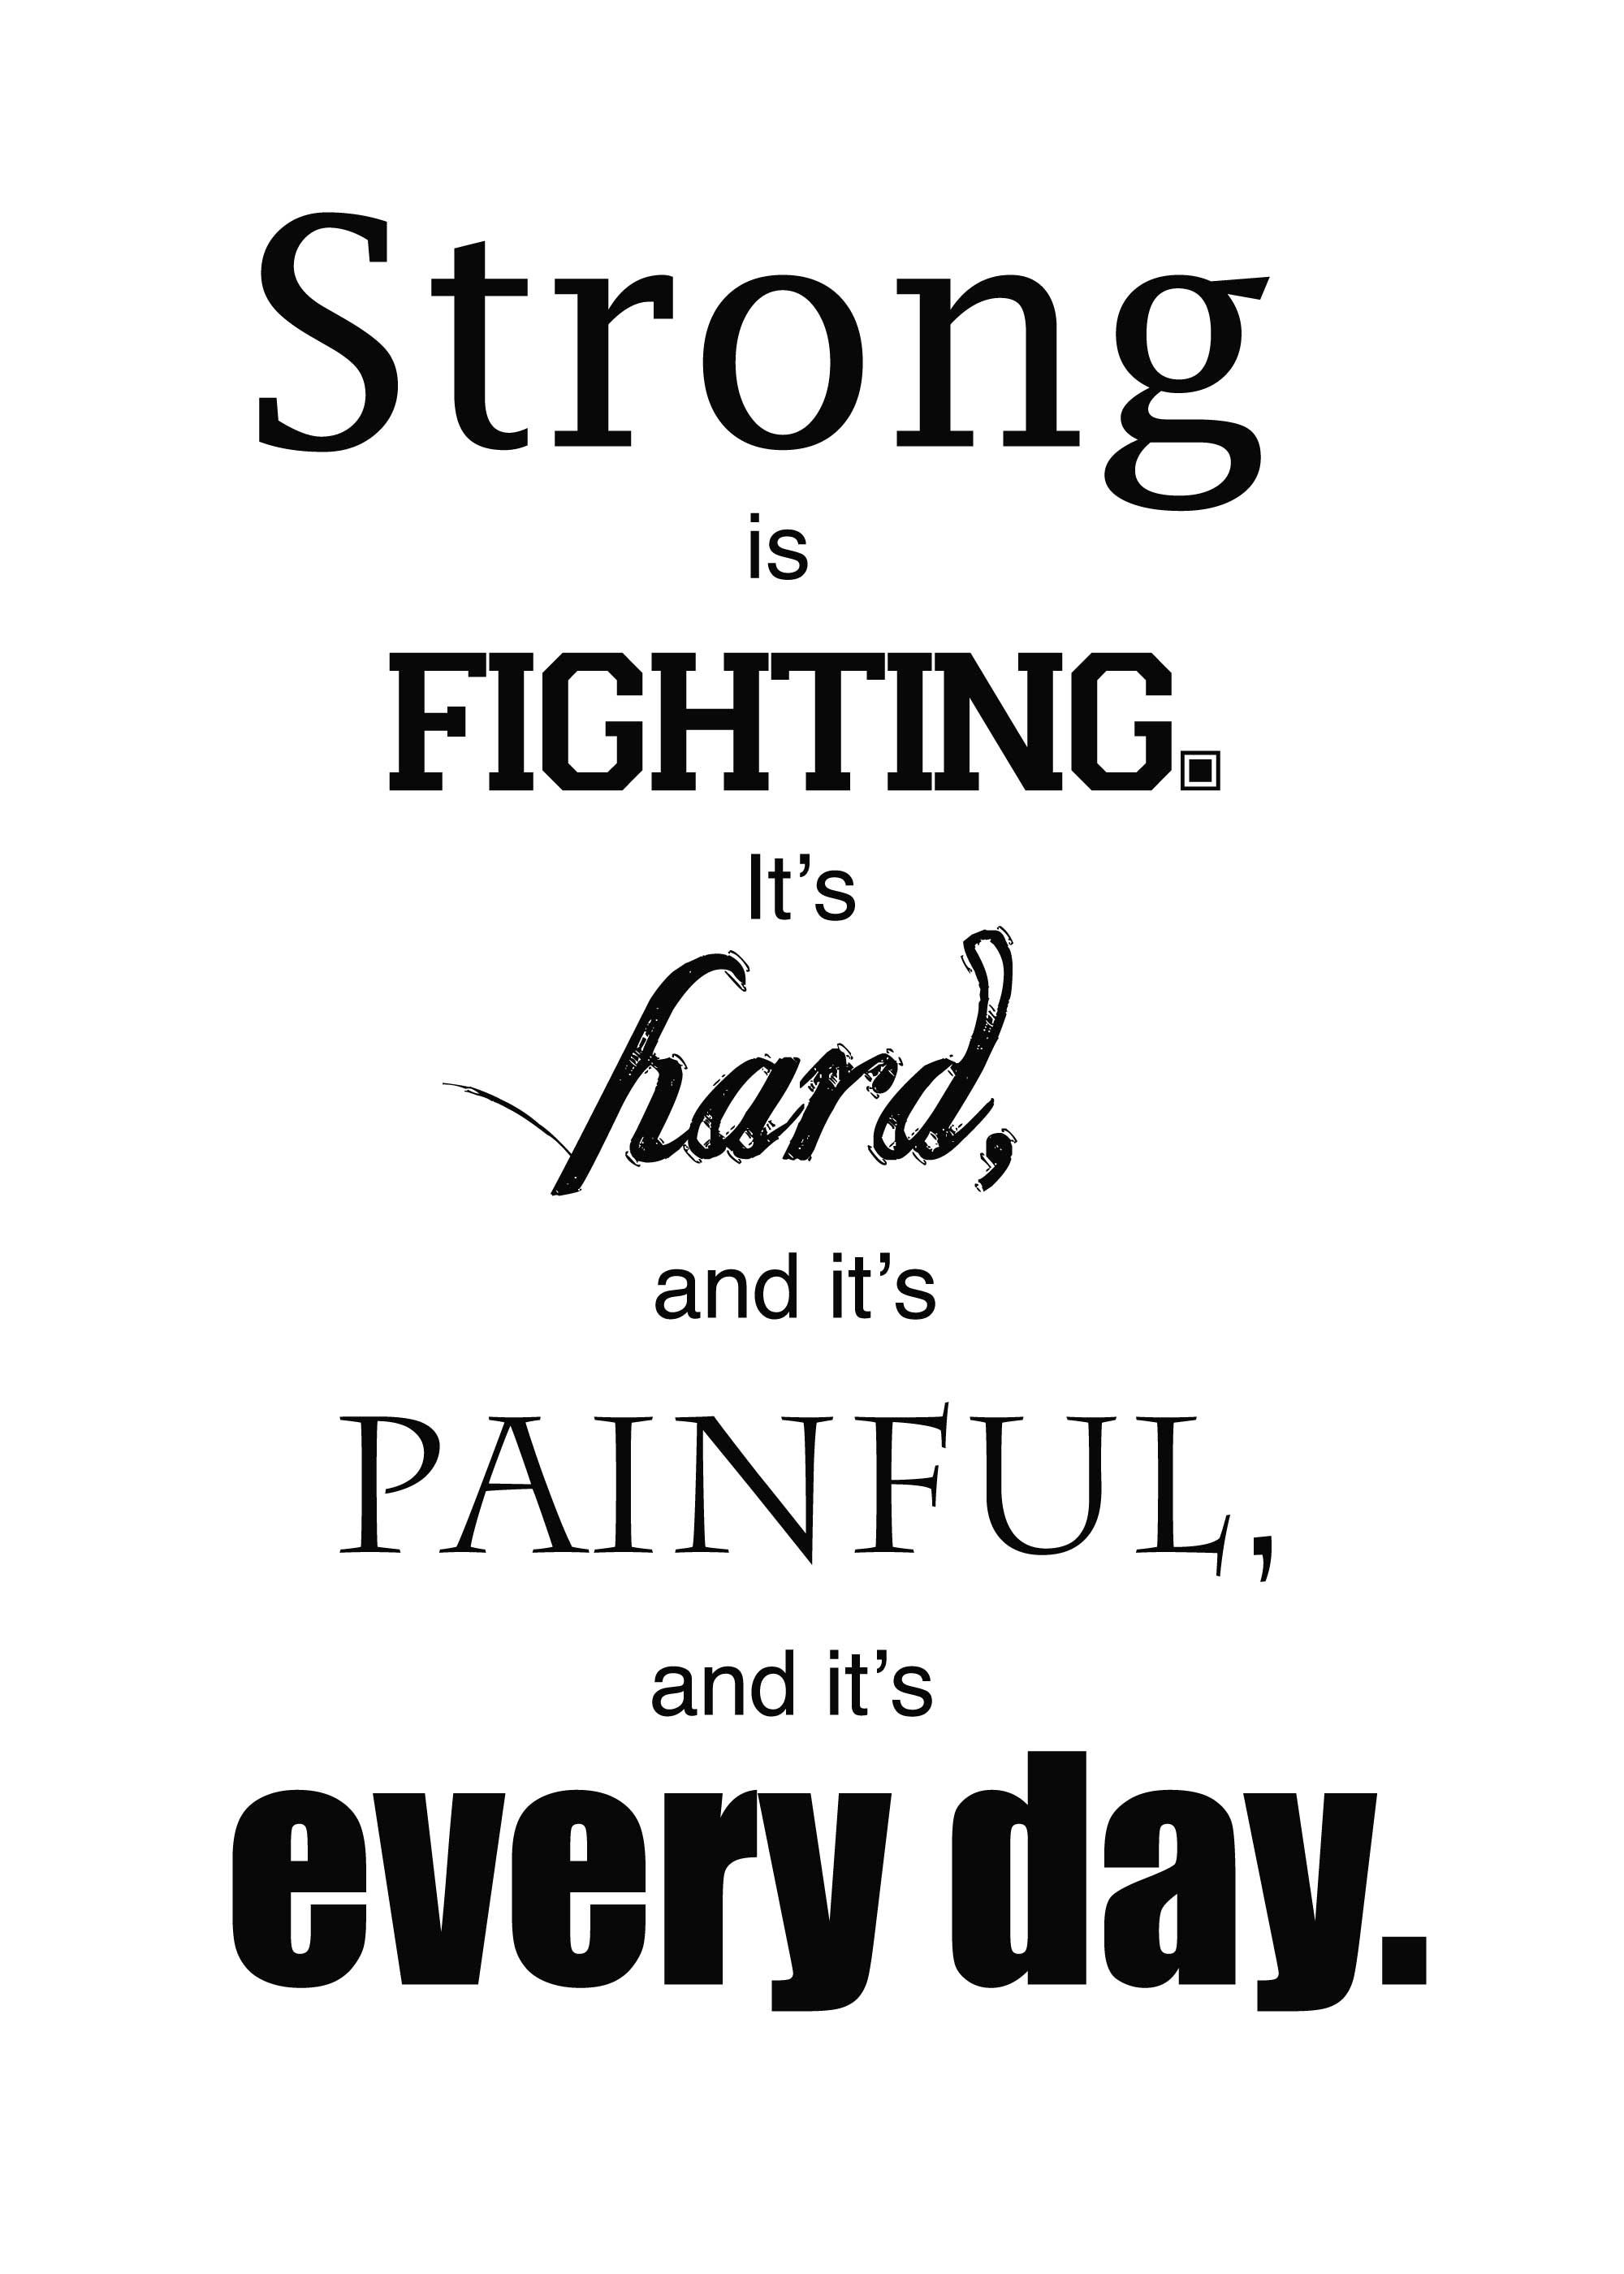 Chronic Pain Quotes Cancer Keep Fighting Quotes Chronic Pain Picture